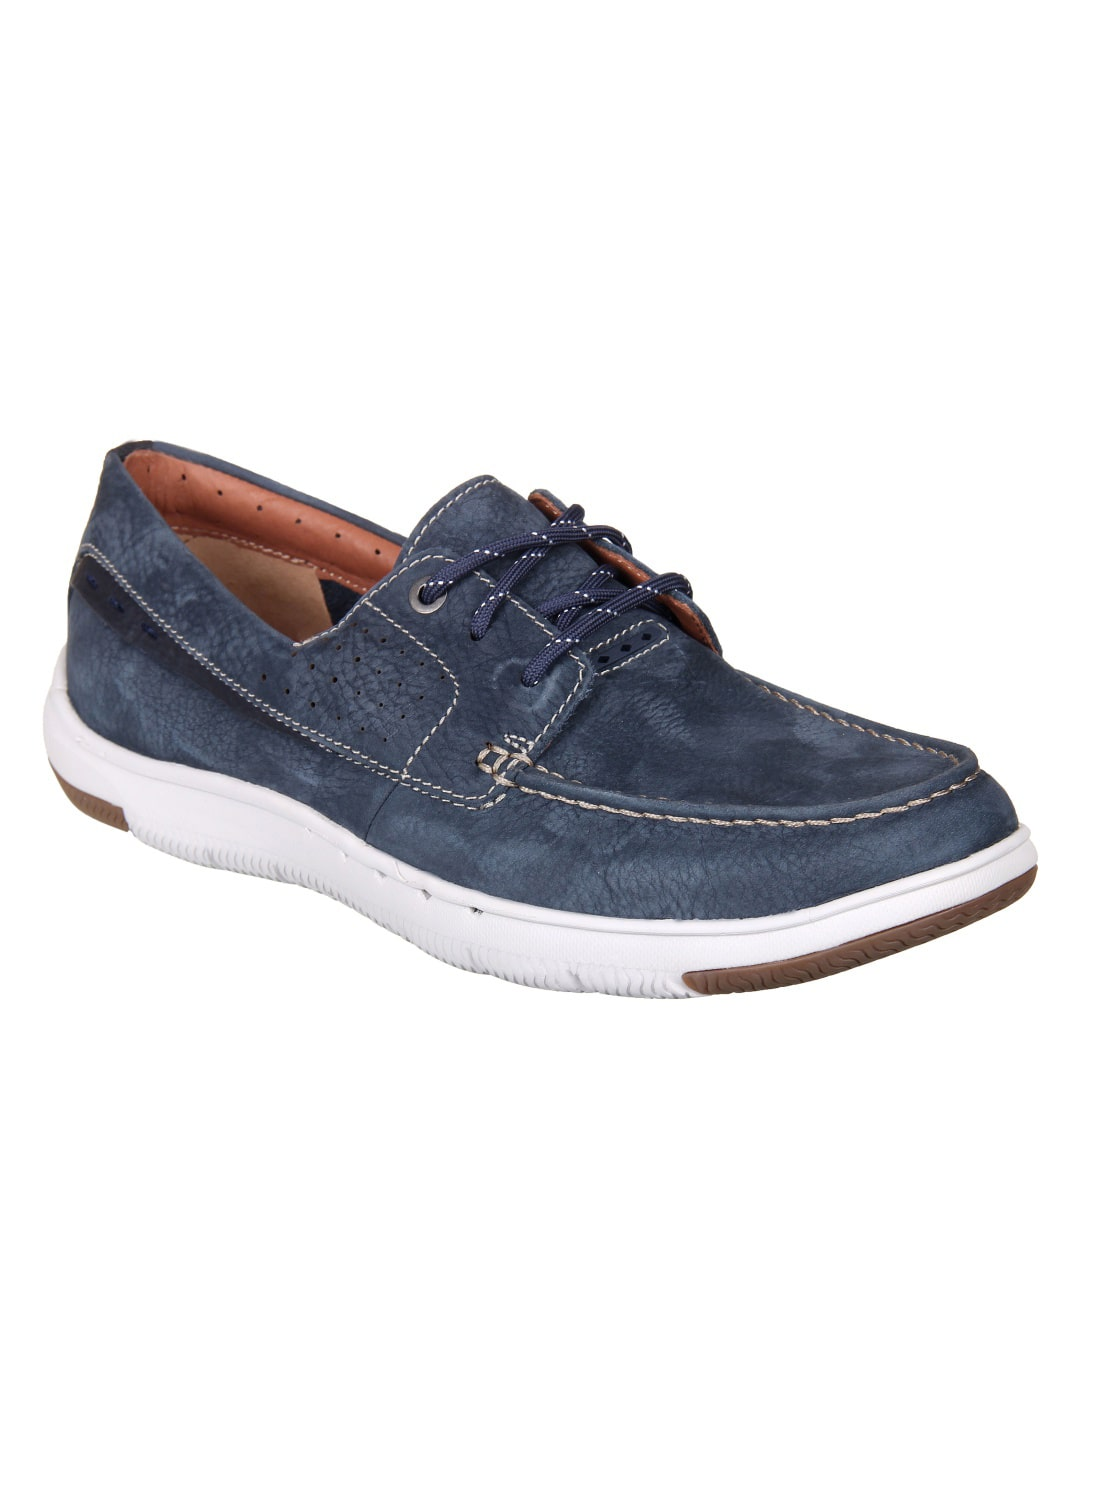 0d79b619066 Buy Clarks Men Blue Casual Shoes - 91261242497 Online at Low Prices ...